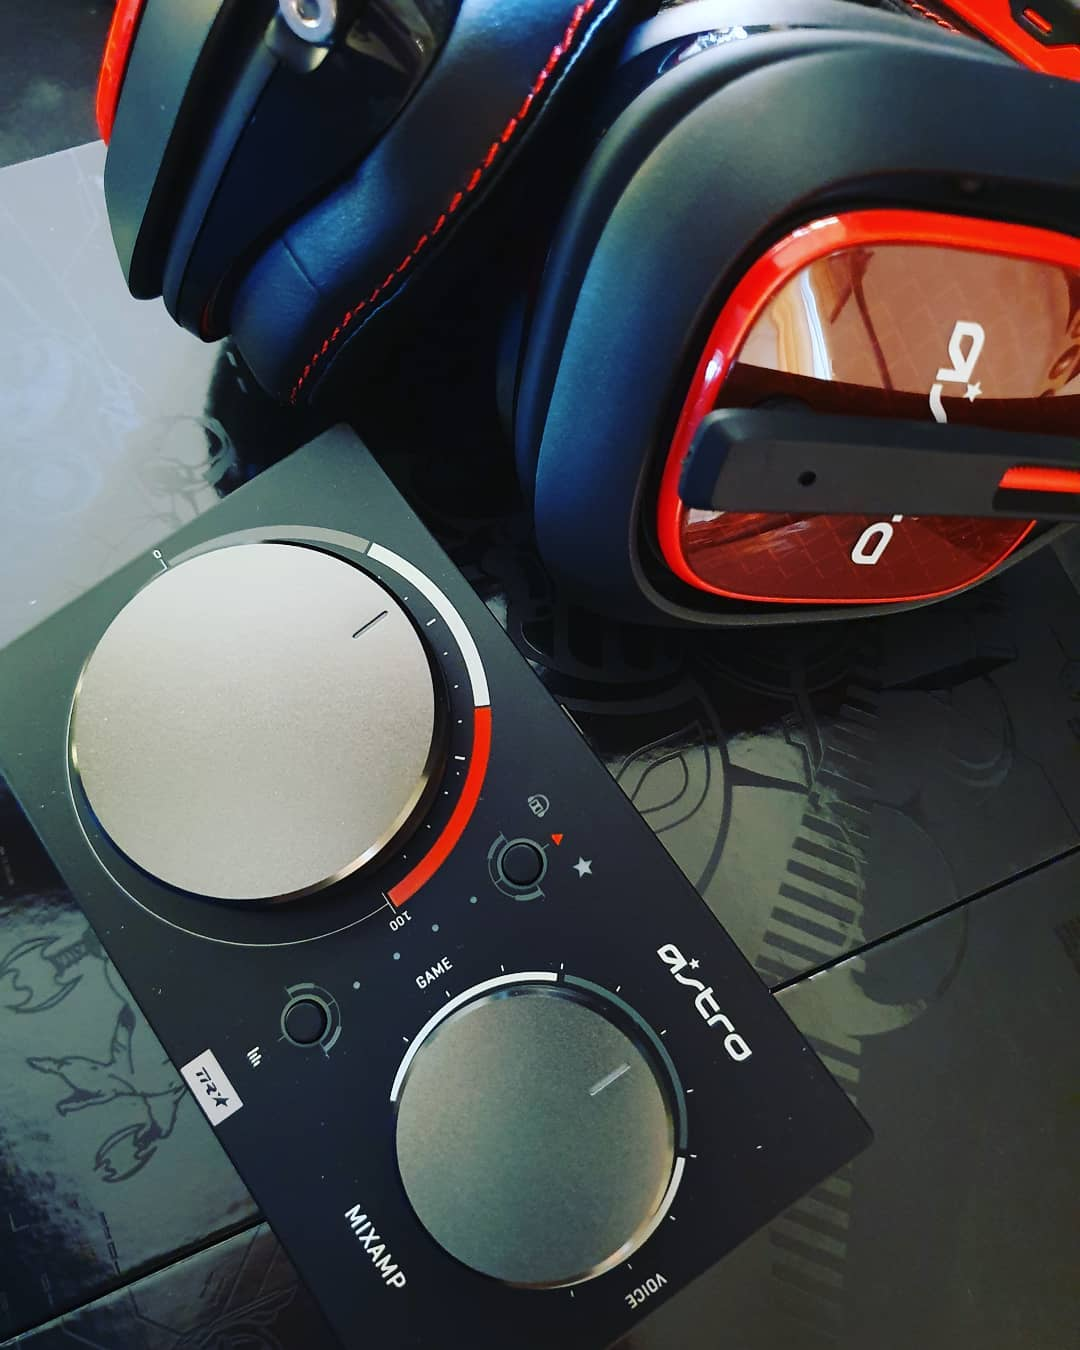 New #gaming Gear 😍 @astrogaming A40 + mixamp pro and Mod kit  #esports  #gaming #xbox #overwatch #autpbo